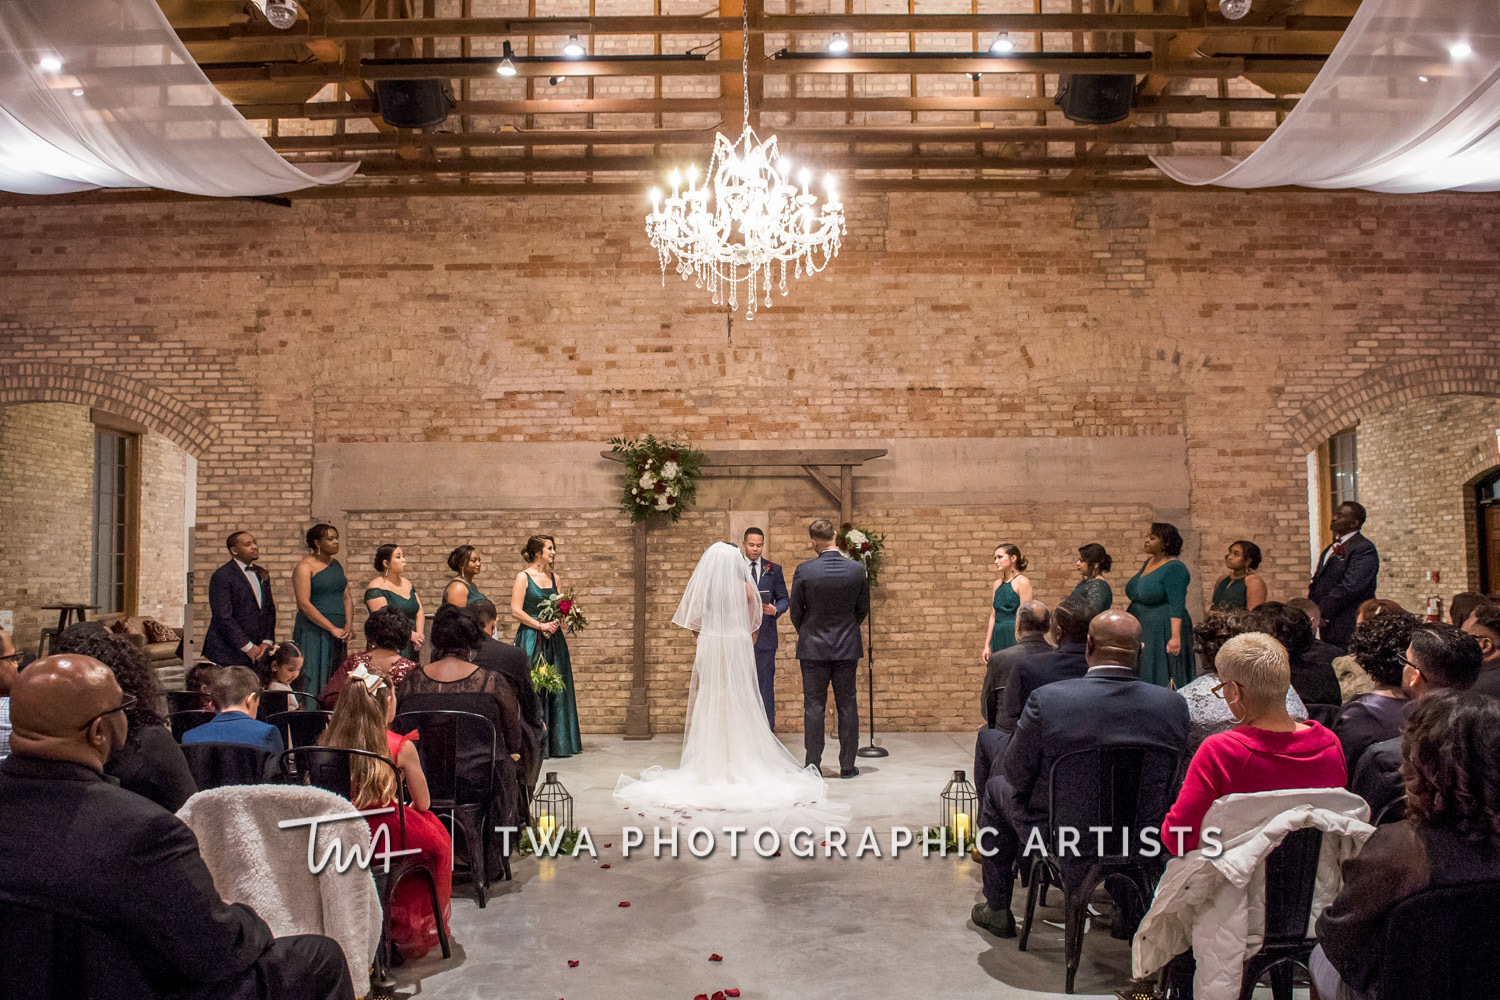 Chicago-Wedding-Photographer-TWA-Photographic-Artists-Brix-on-the-Fox_Johnson_Carrion_NO_DR-0701